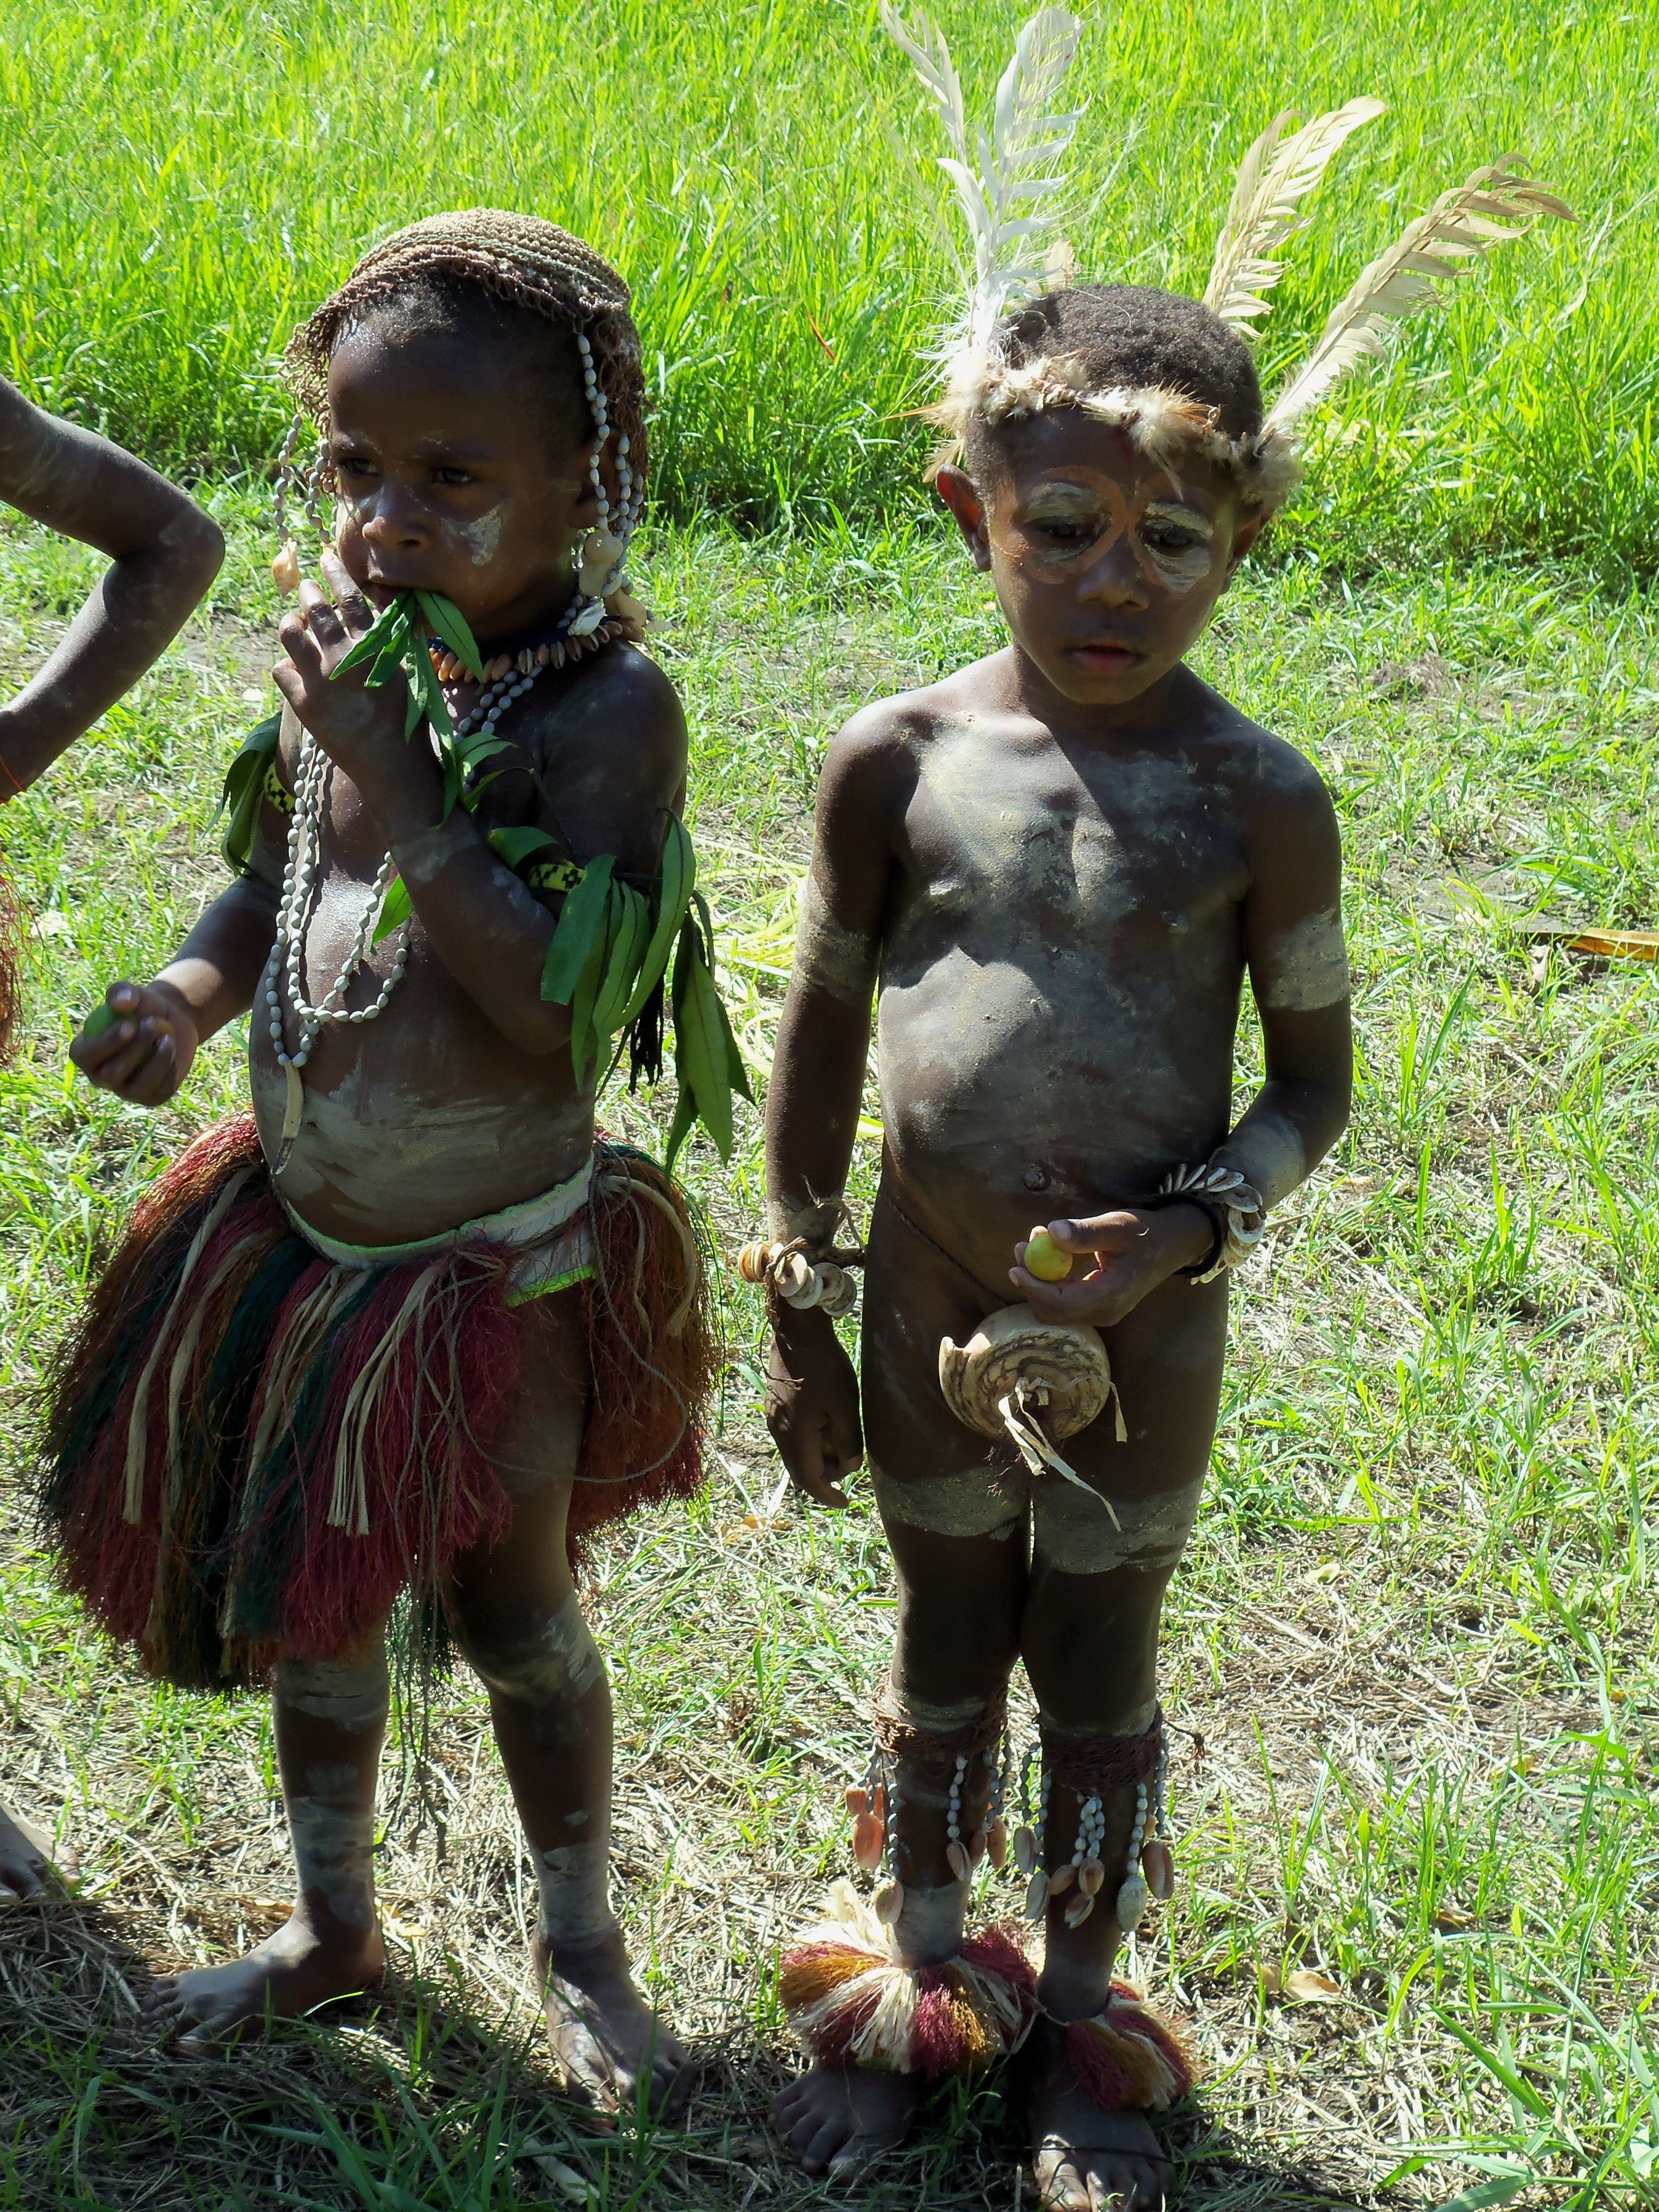 tribe boys Lars krutak tattoo anthropologist menu cutting the crocodile spirits will eat the boys and orally picture of the culture of a new guinea tribe drawn from.